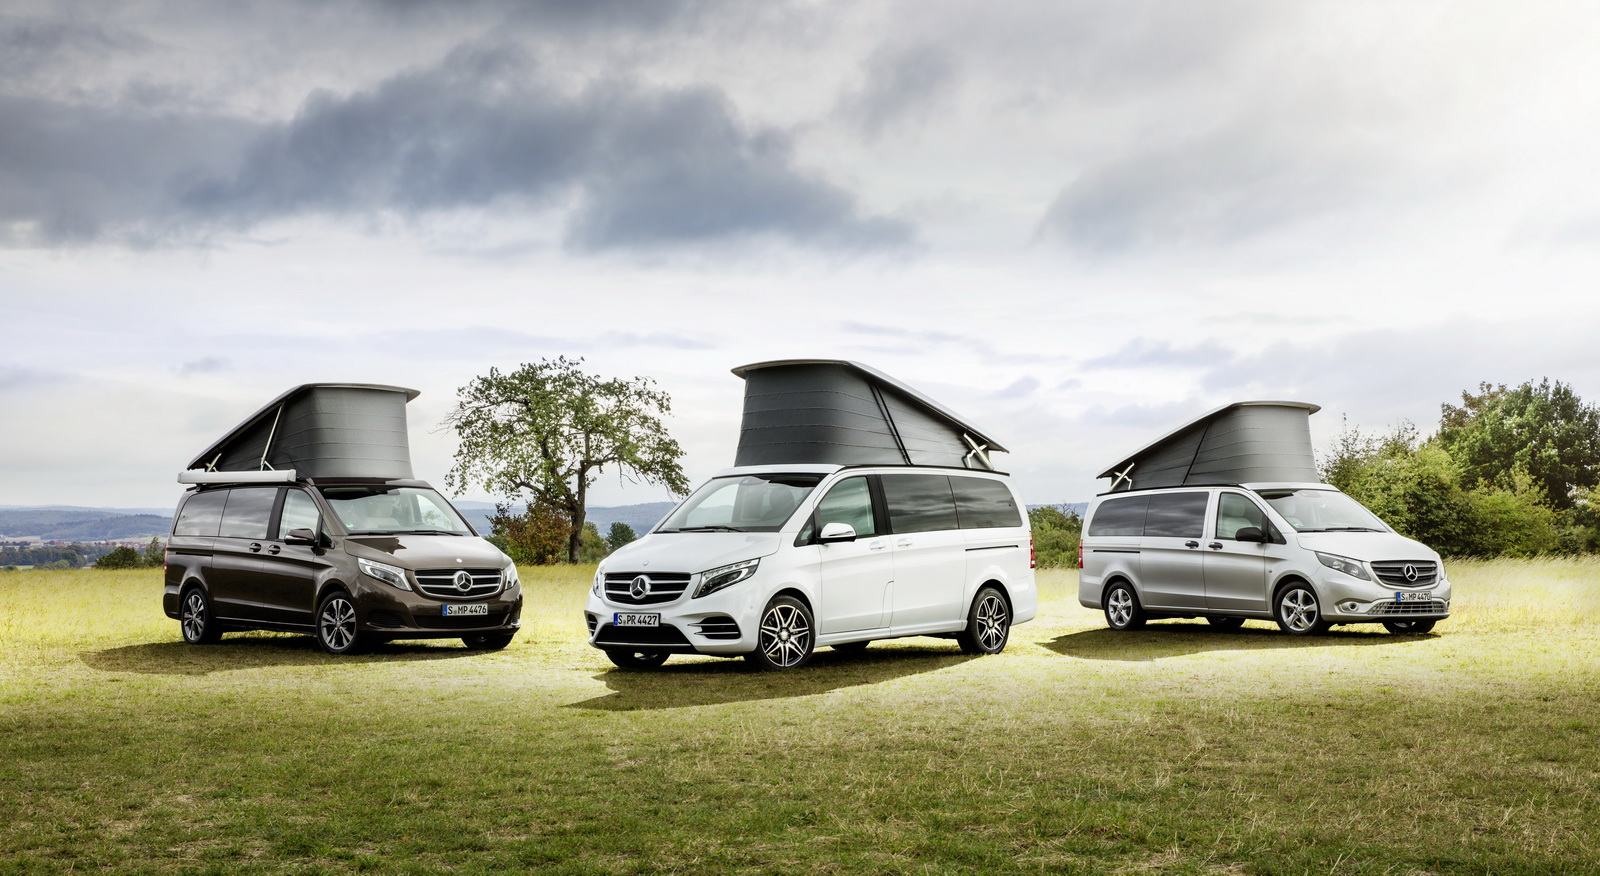 First mercedes x class camper concepts debut in germany for Mercedes benz germany internship